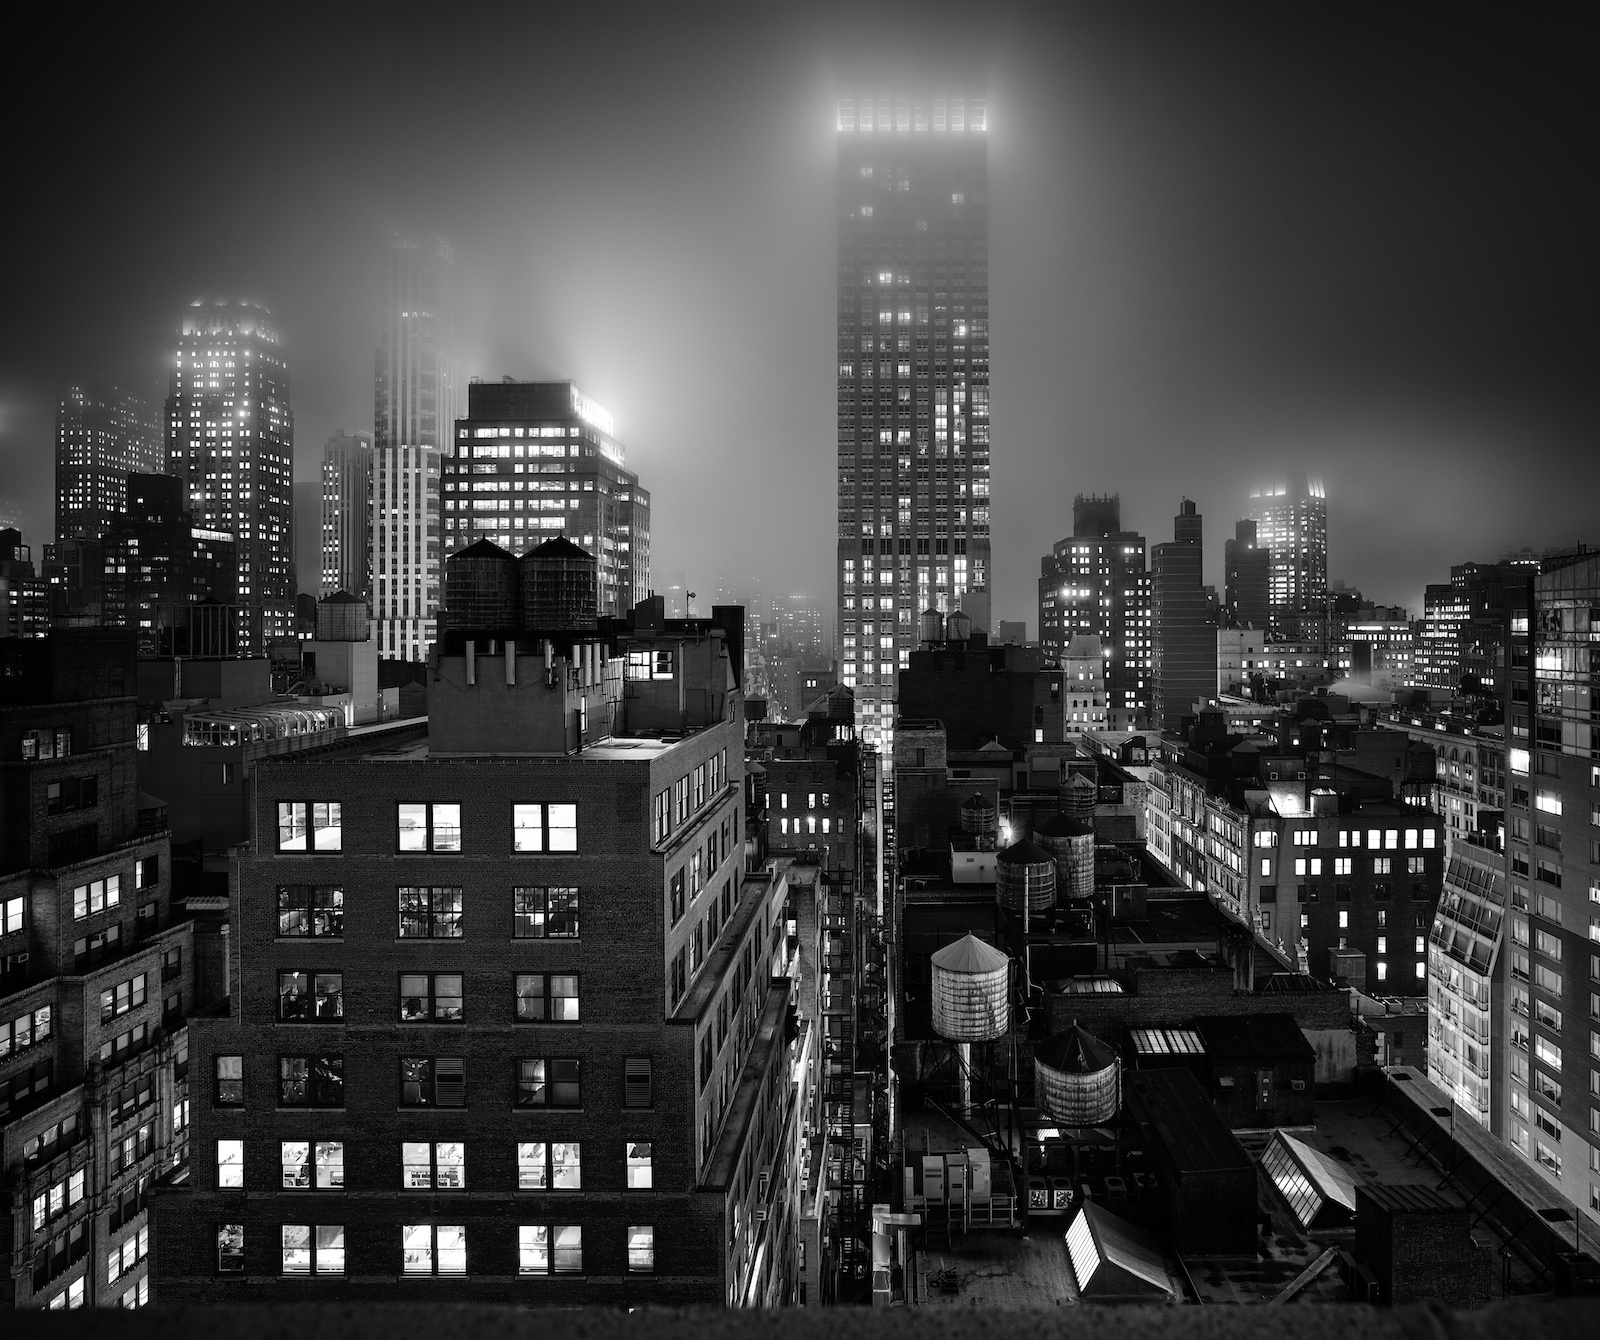 THAT foggy day in NY.